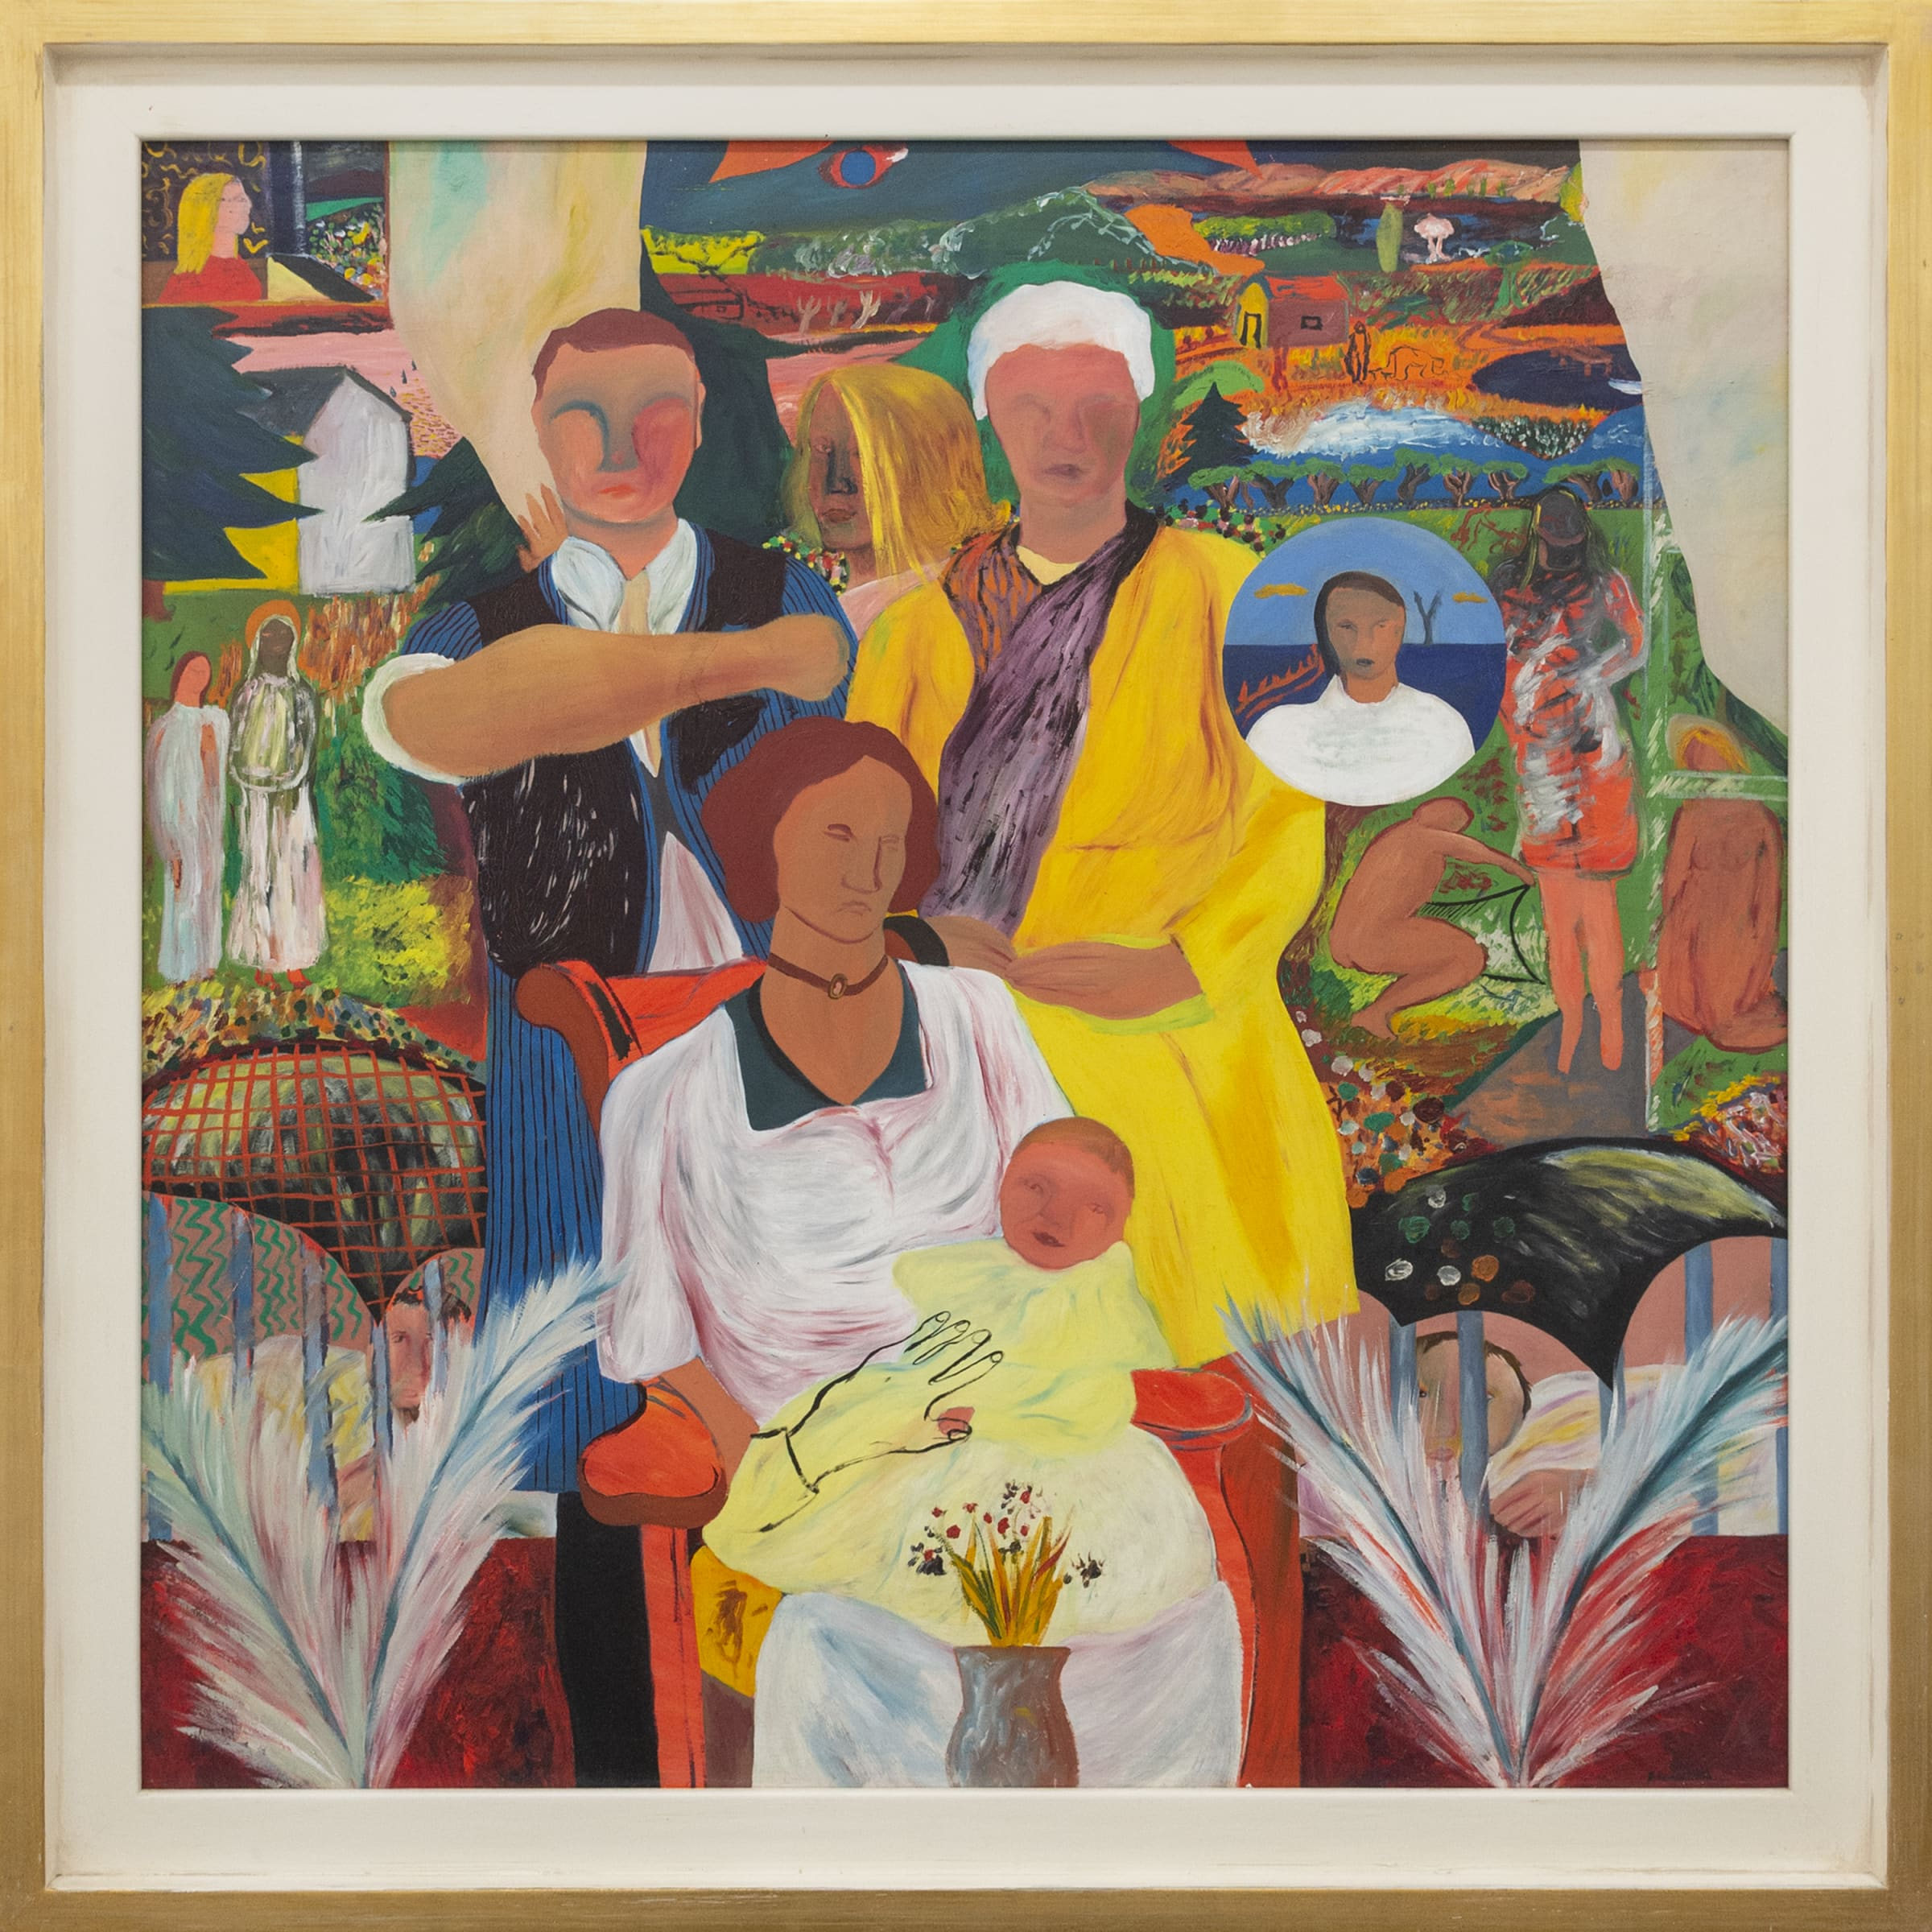 <span class=&#34;link fancybox-details-link&#34;><a href=&#34;/artists/76-jeffrey-harris/works/7690-jeffrey-harris-family-portrait-c.-1974/&#34;>View Detail Page</a></span><div class=&#34;artist&#34;><strong>Jeffrey Harris</strong></div> <div class=&#34;title&#34;><em>Family Portrait</em>, c. 1974</div> <div class=&#34;medium&#34;>Oil on board</div> <div class=&#34;dimensions&#34;>139.5 x 139.5 cm<br /> 54 7/8 x 54 7/8 in</div><div class=&#34;copyright_line&#34;>Copyright The Artist</div>